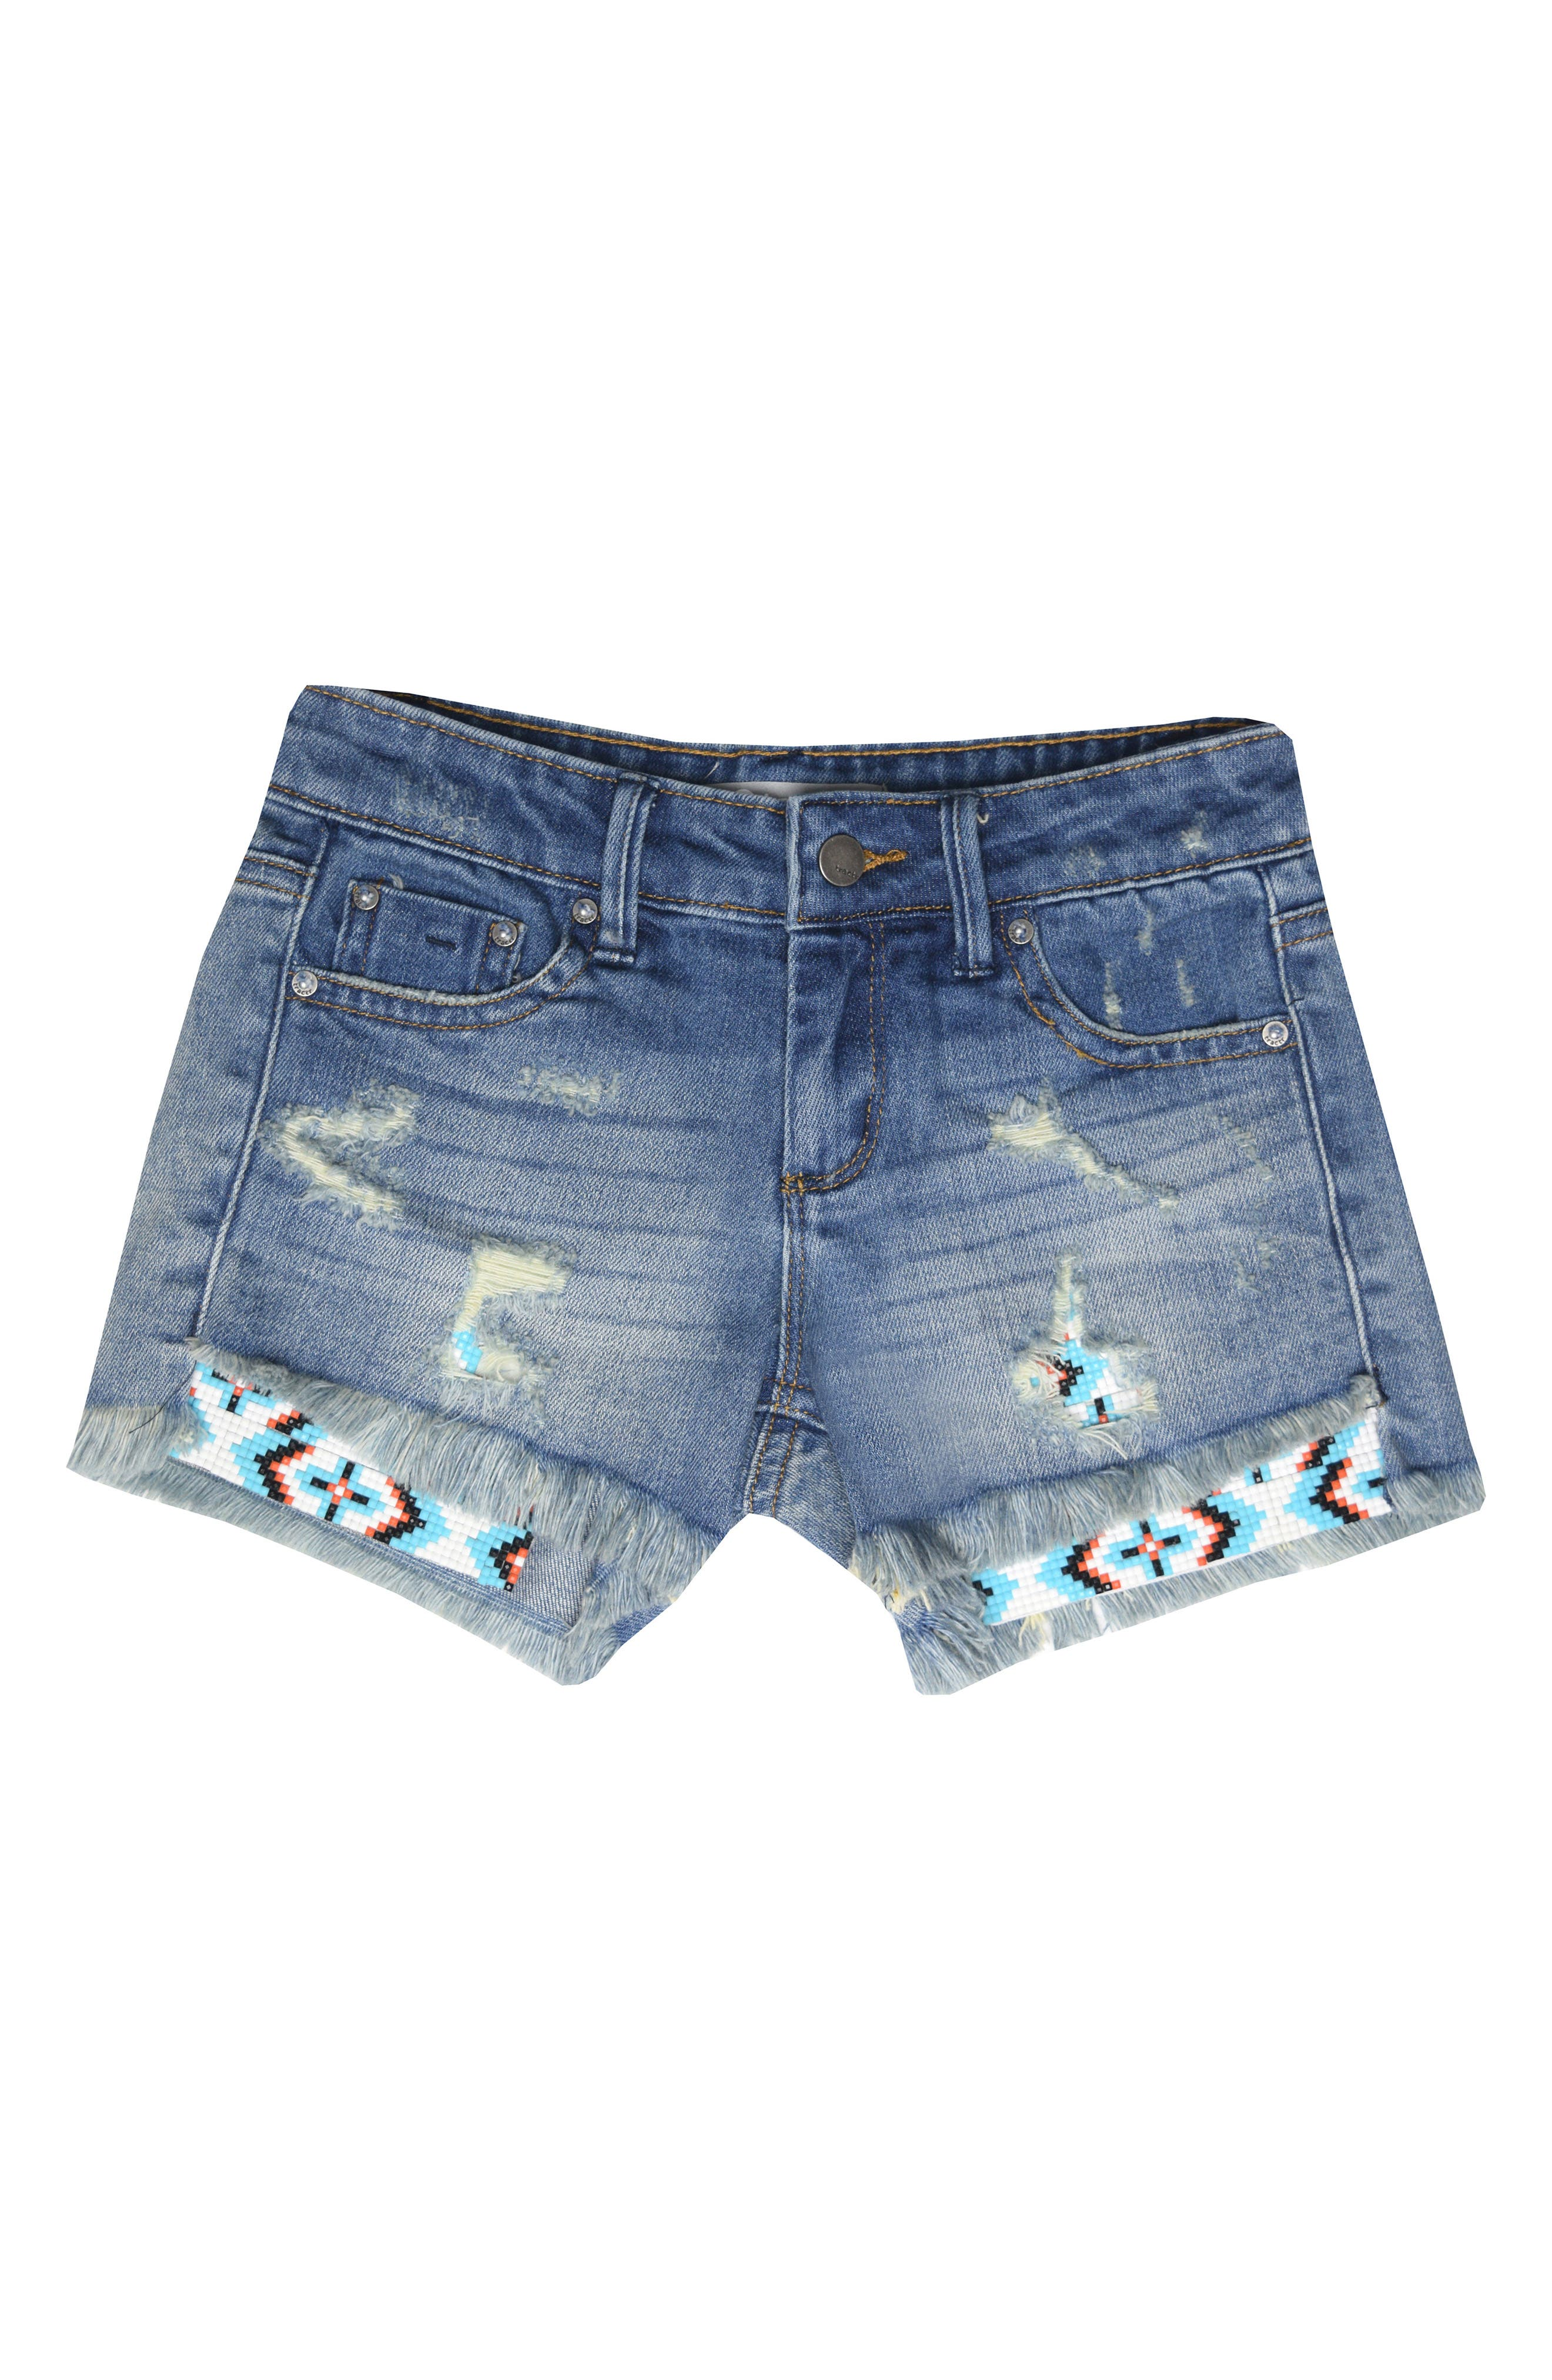 Beaded Distressed Denim Shorts,                         Main,                         color,